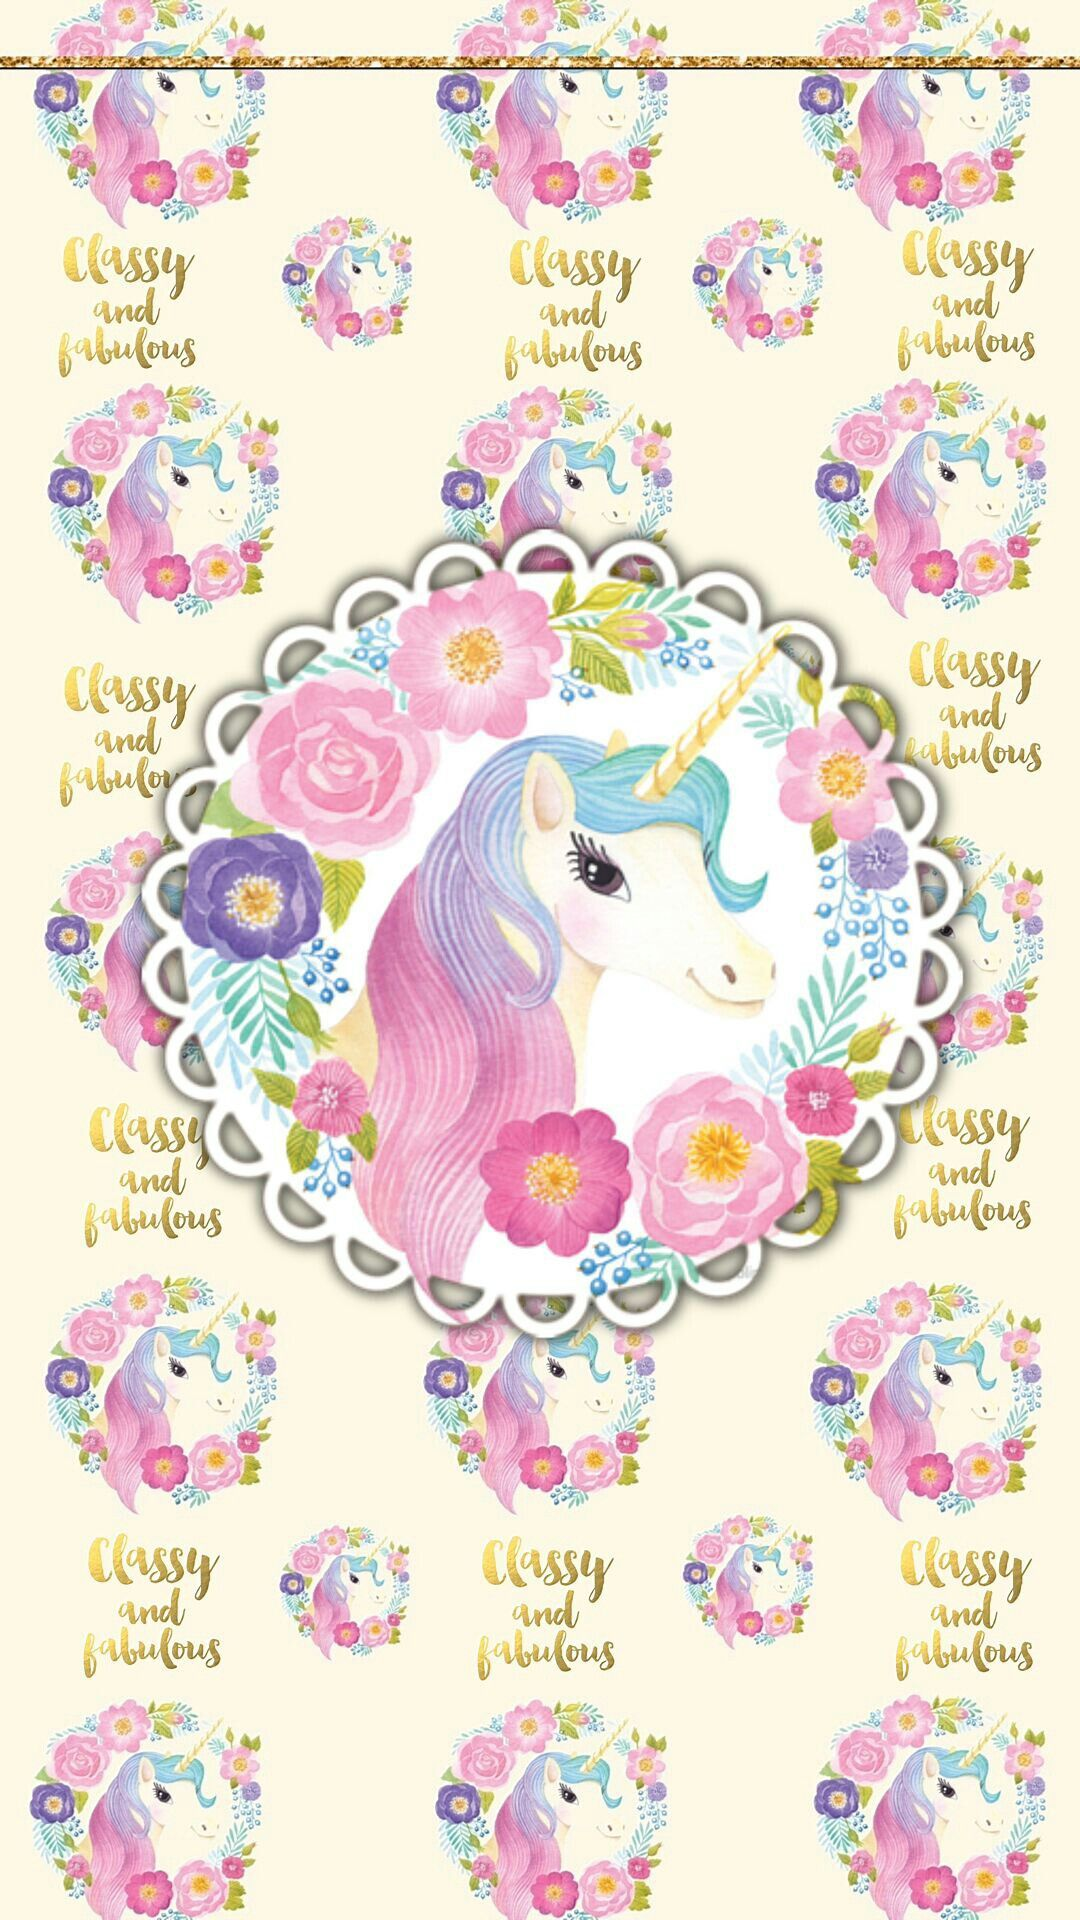 Pin By Camila Soares On More Wallz Ii Unicorn Wallpaper Baby Pink Wallpaper Iphone Cute Wallpapers